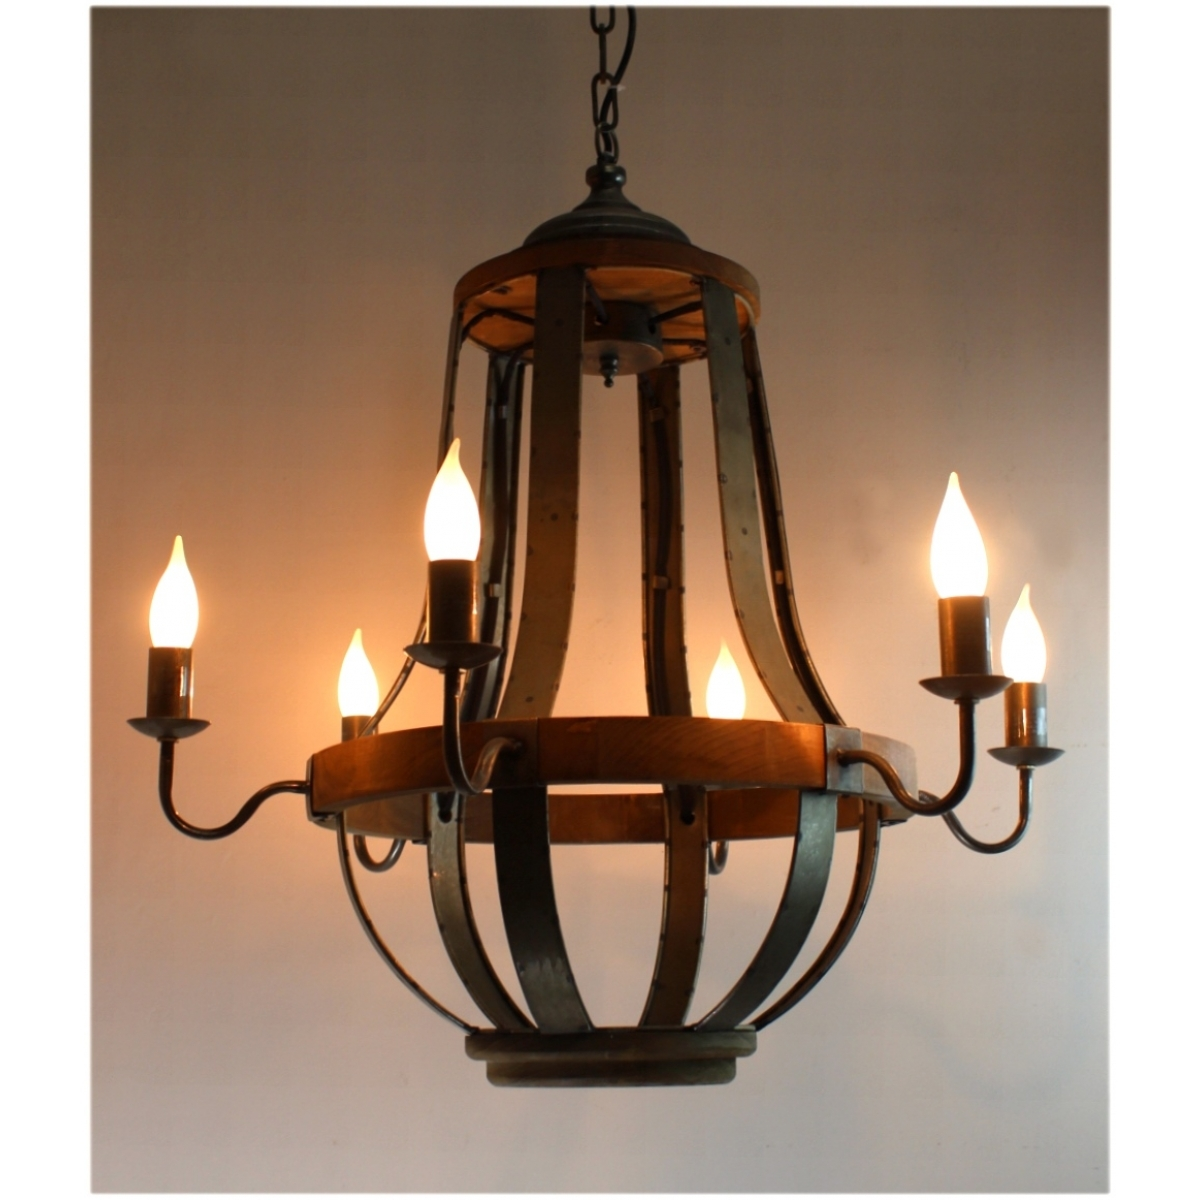 579 Iron Strap And Aged Wood Chandelier French Country Vintage In Vintage Style Chandelier (View 11 of 15)